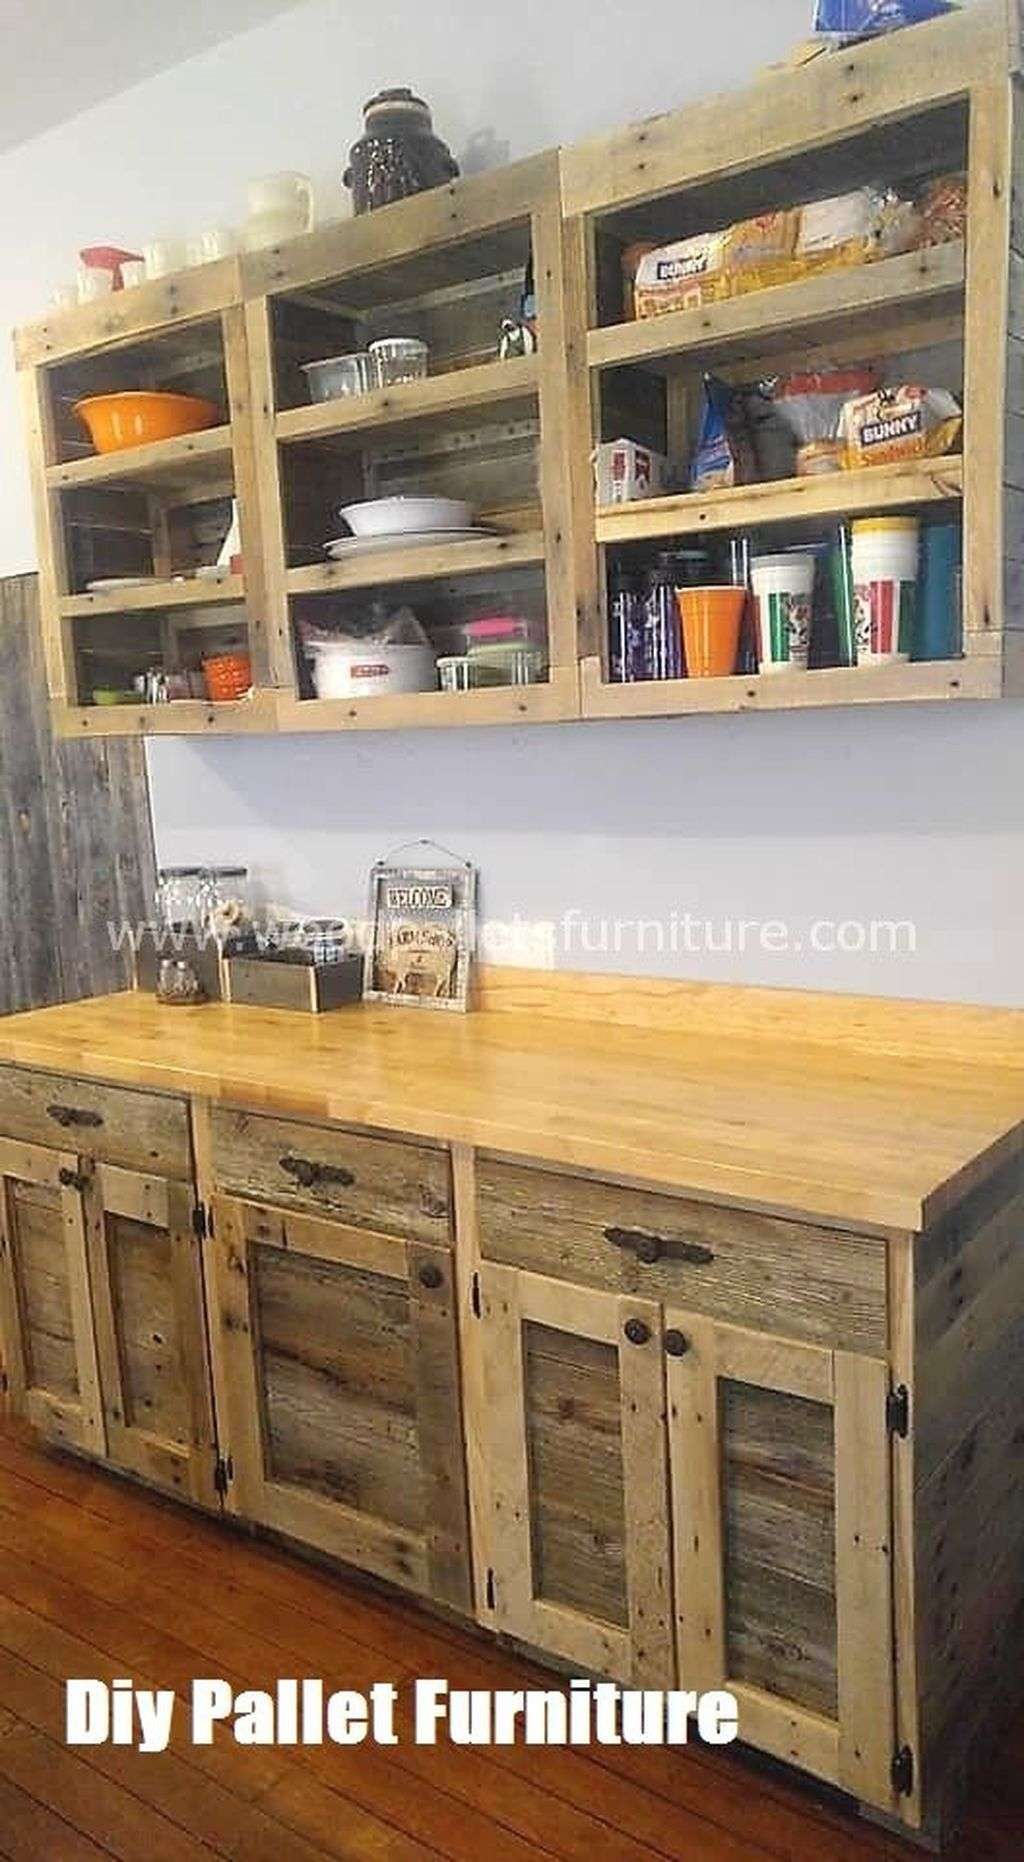 20 Chic Diy Projects Pallet Kitchen Design Ideas To Try In 2020